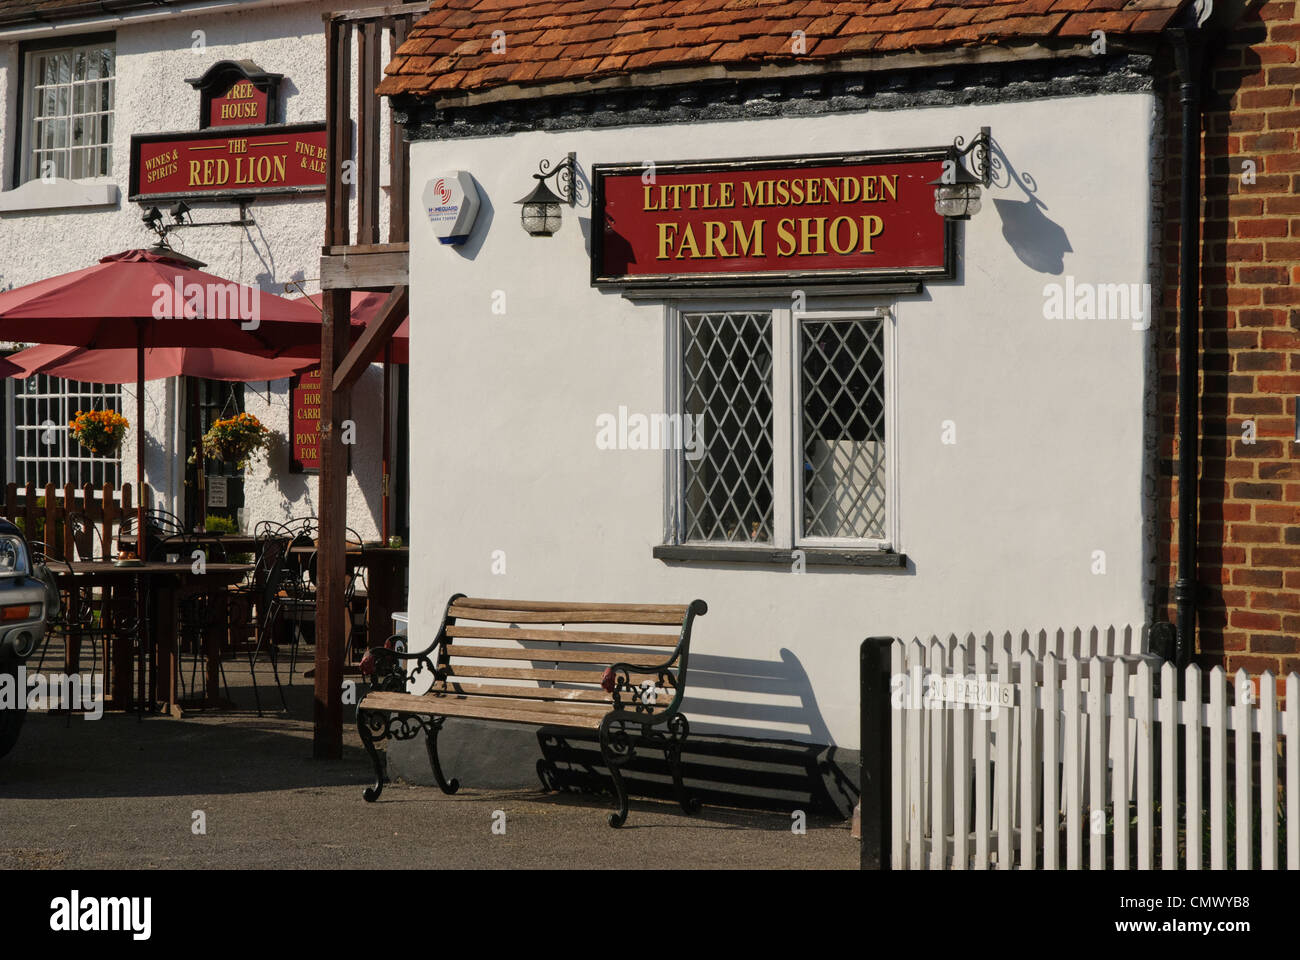 The Farm shop in the rural village of Little Missenden, Buckinghamshire, England. - Stock Image